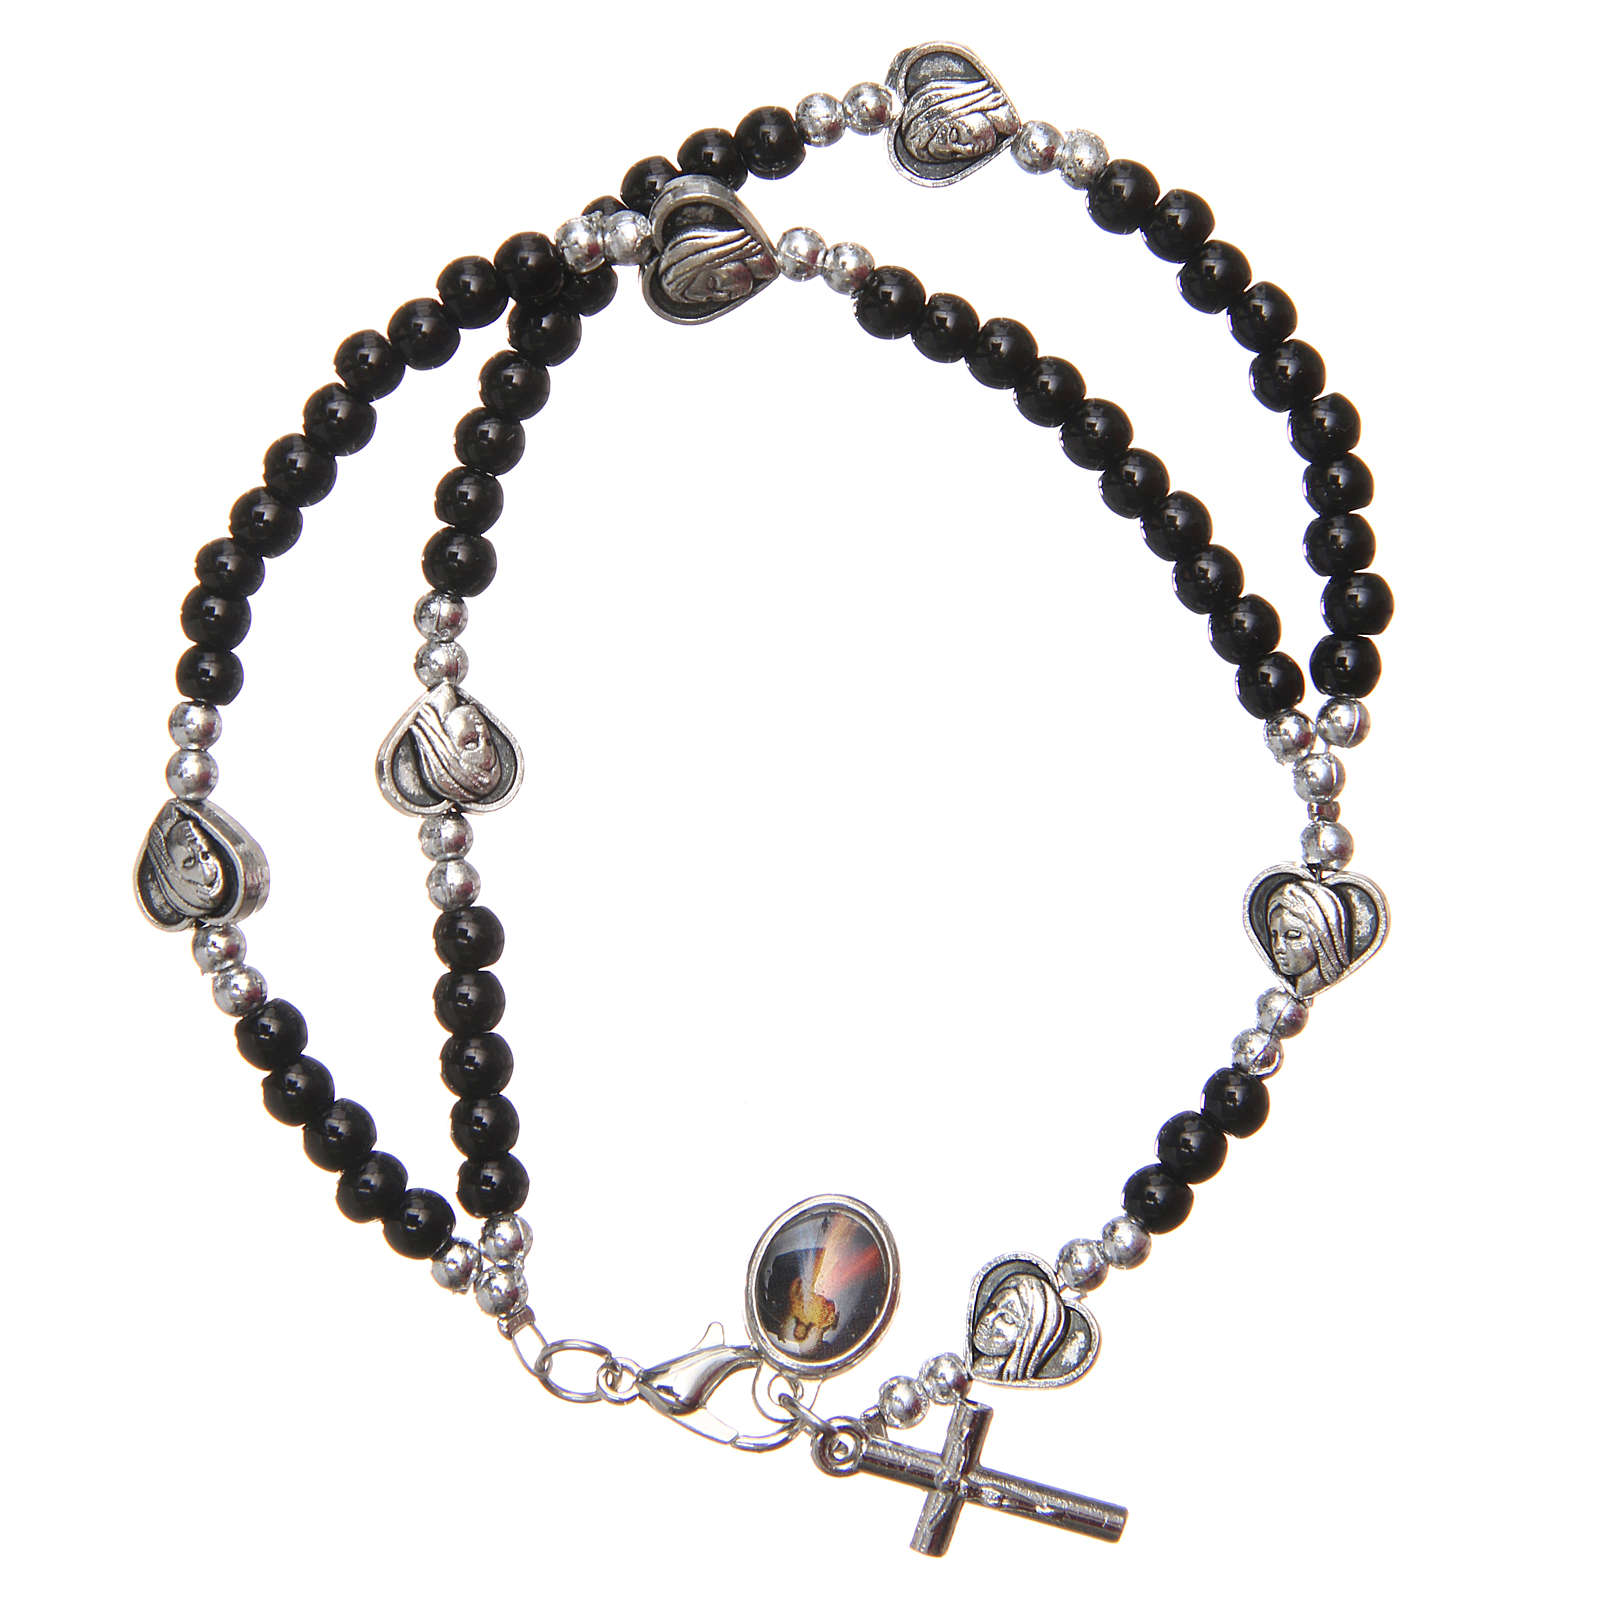 Bracelet black beads Our Lady of Medjugorje 4